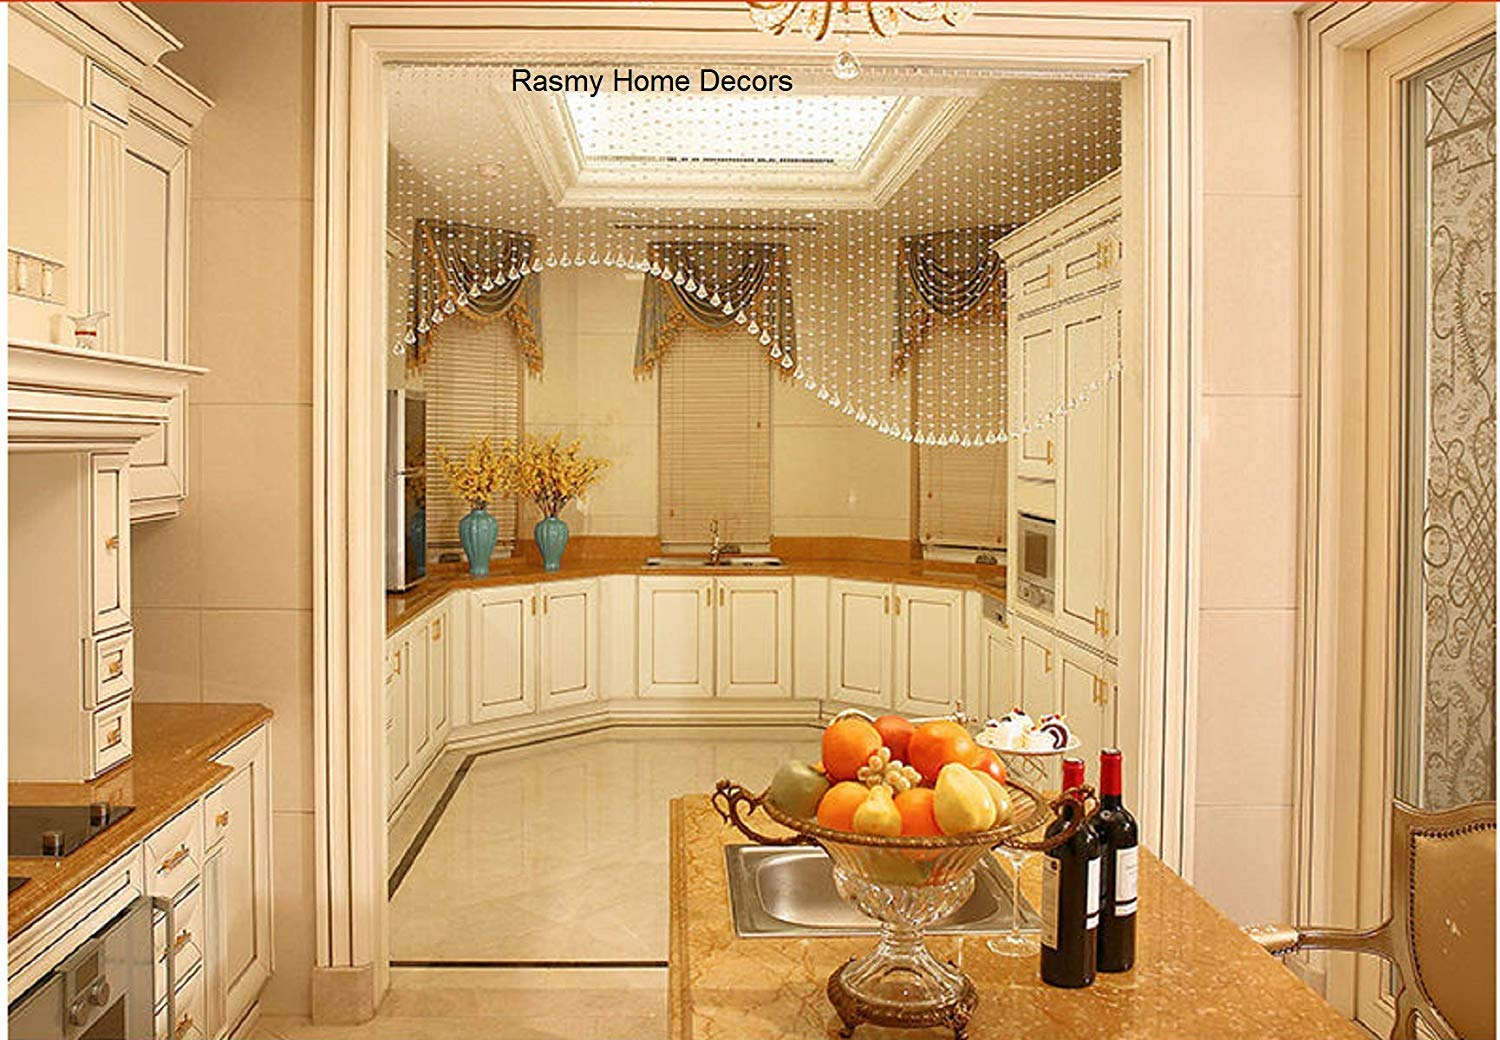 Buy Rasmy Home Decors Arch Partition Open Kitchen Decoration Glass Beads Curtain 50 String Online At Low Prices In India Amazon In